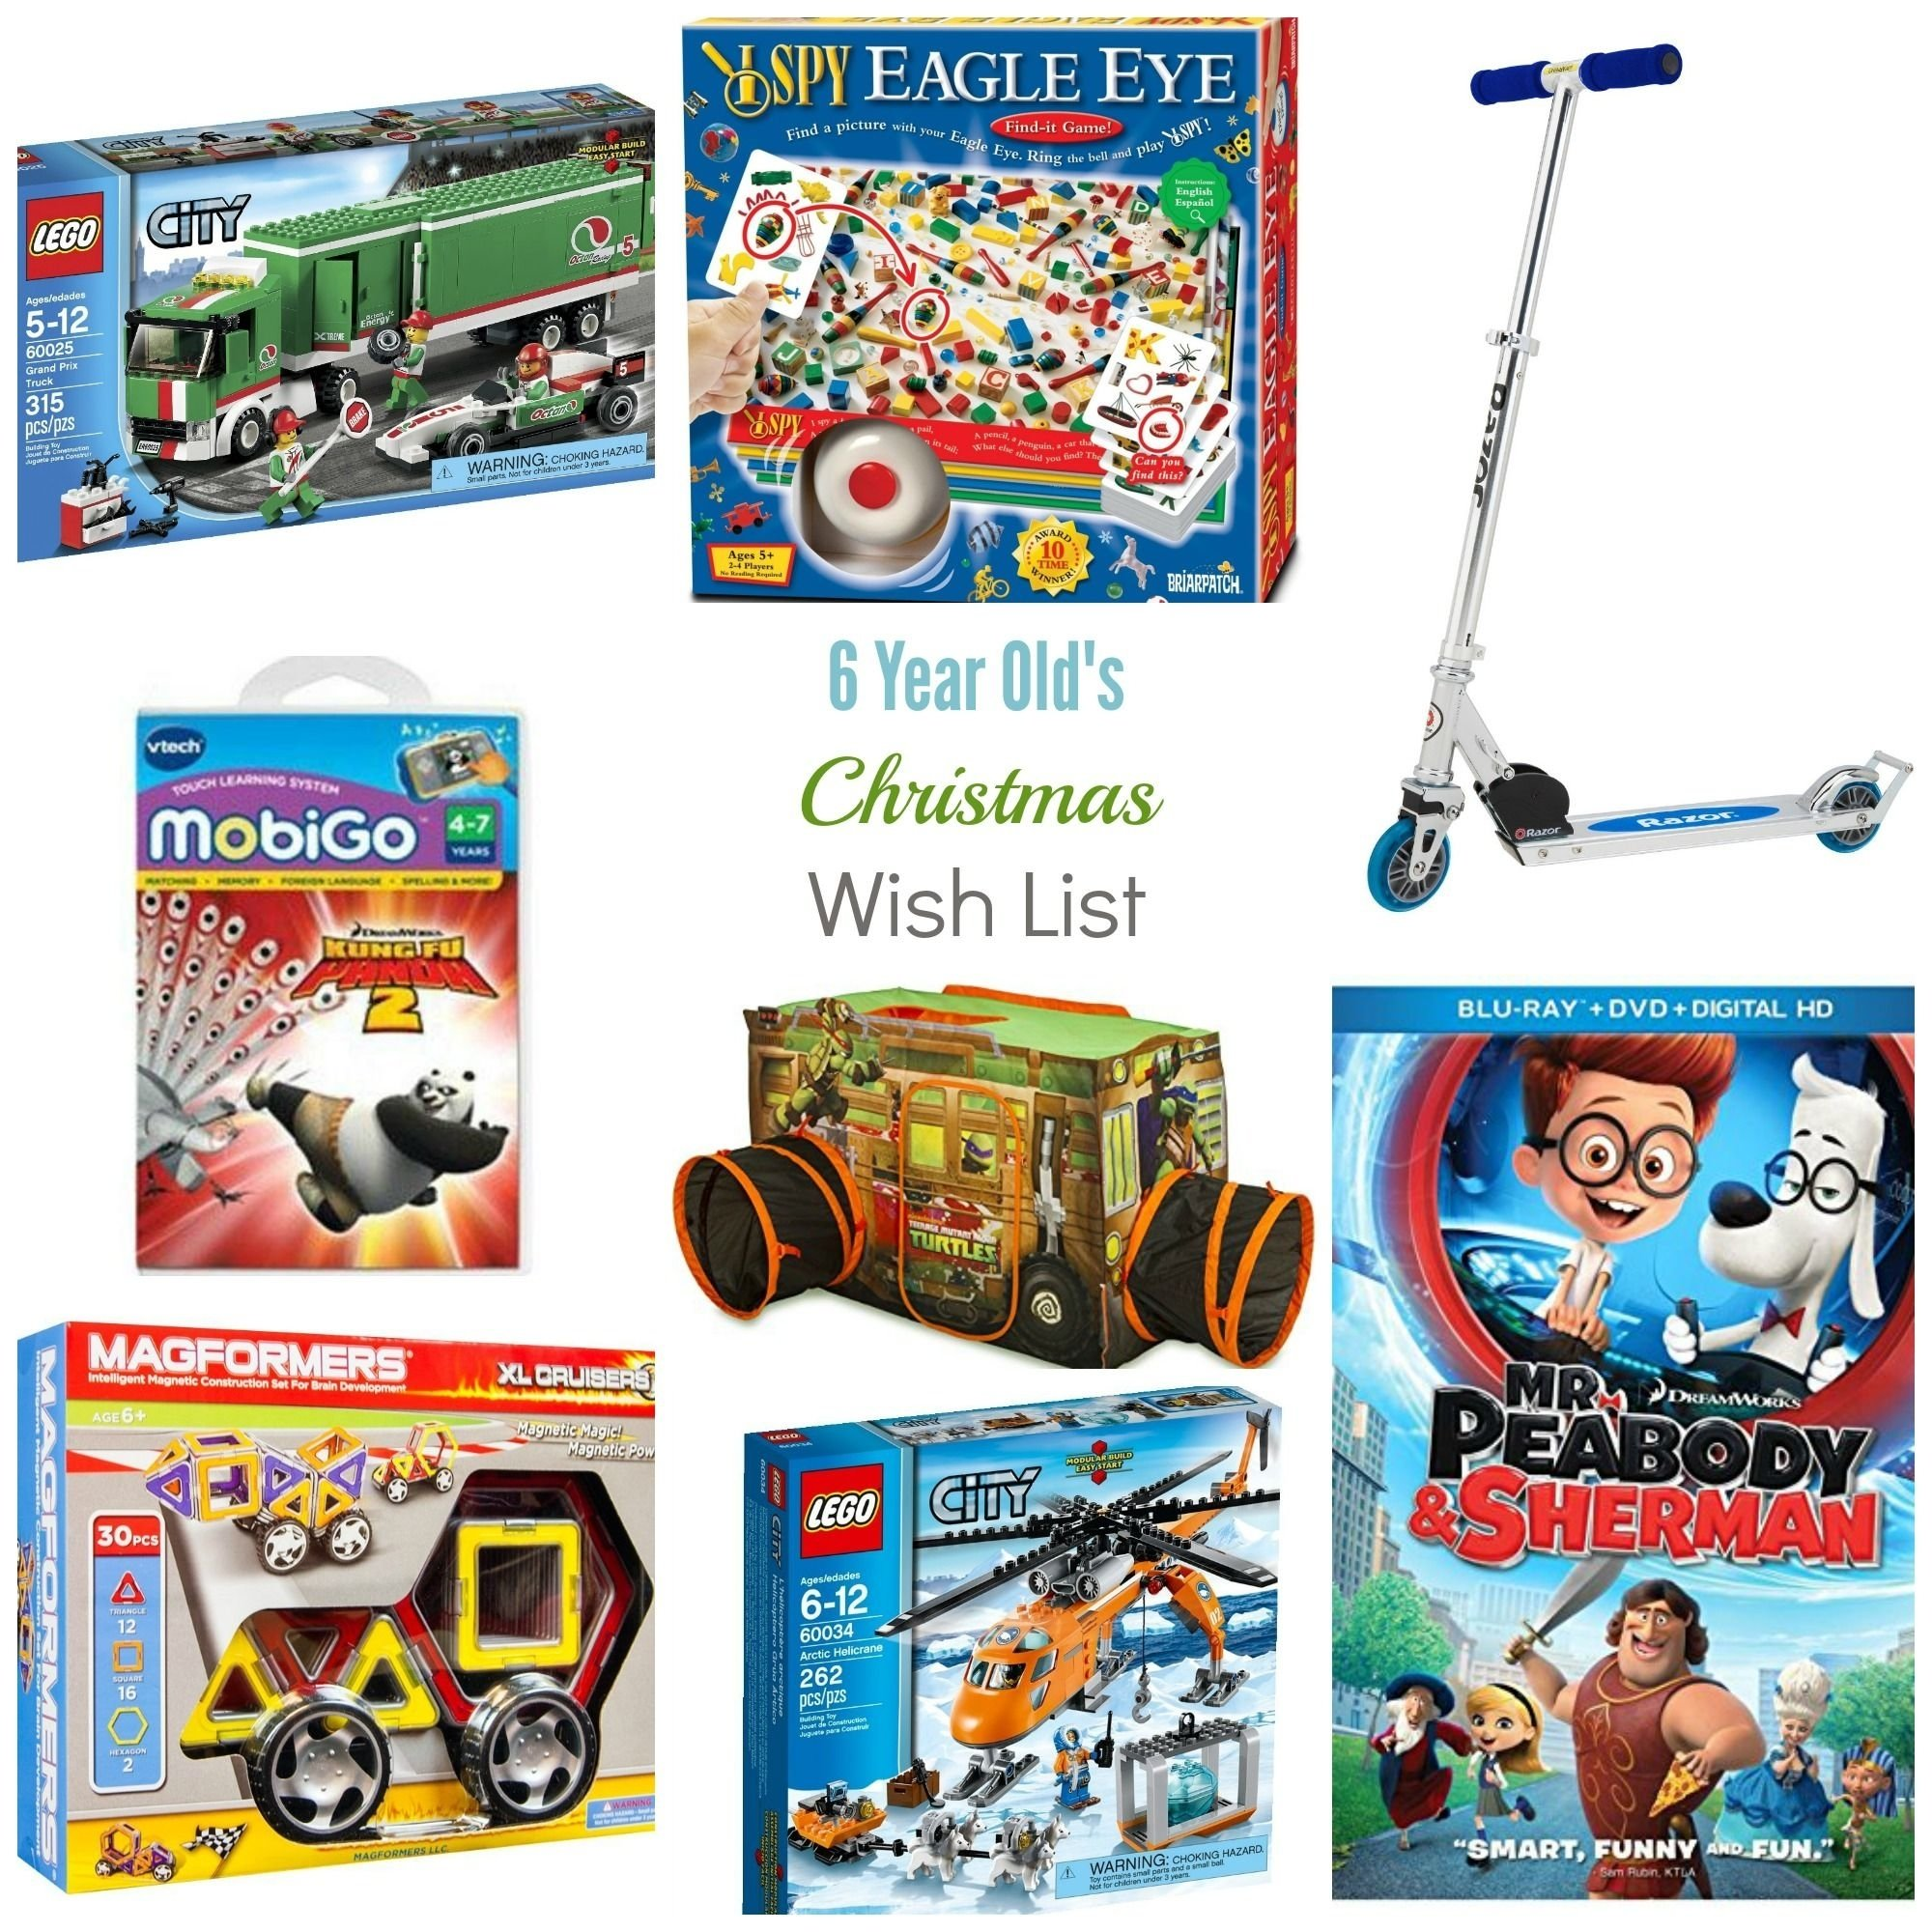 10 nice christmas ideas for 5 year old boy christmas wish list 6 year old boy